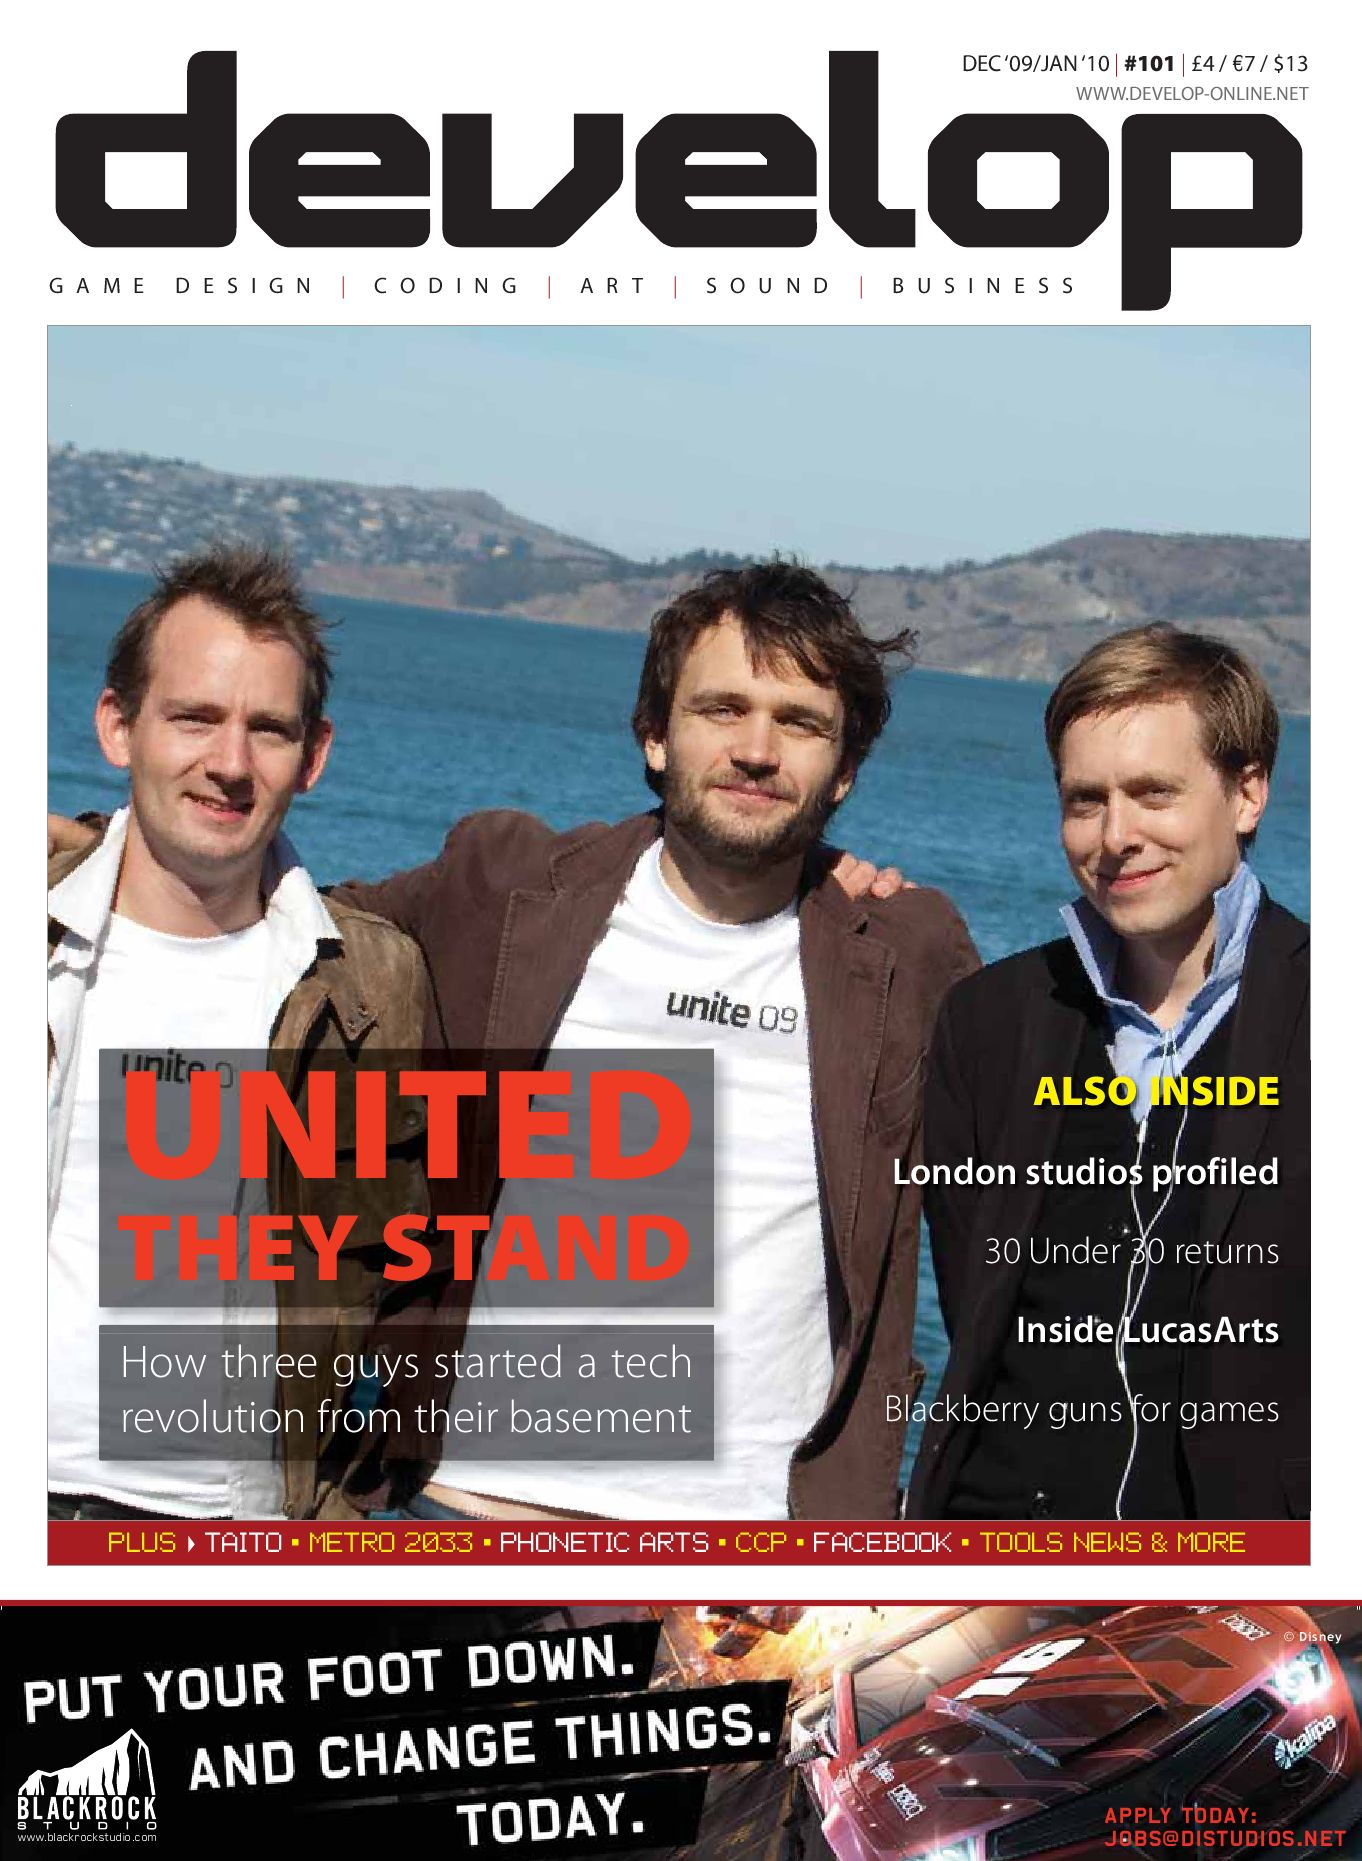 Develop - Issue 101 - December 2009 / January 2010